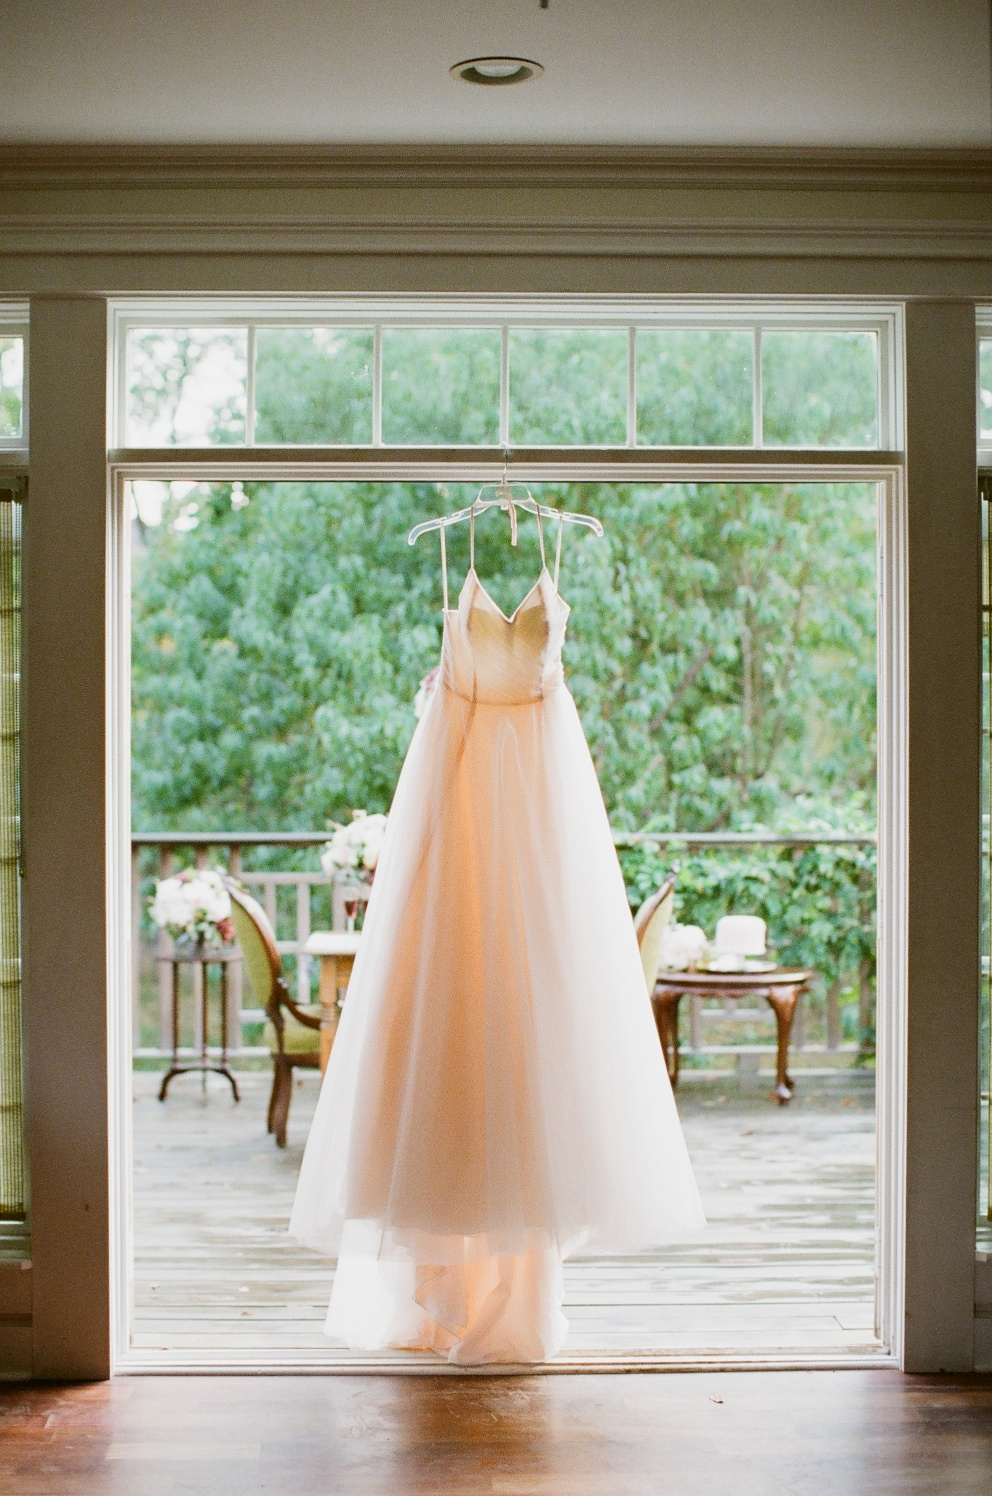 Brides-ivory-wedding-dress-hangs-in-window.original